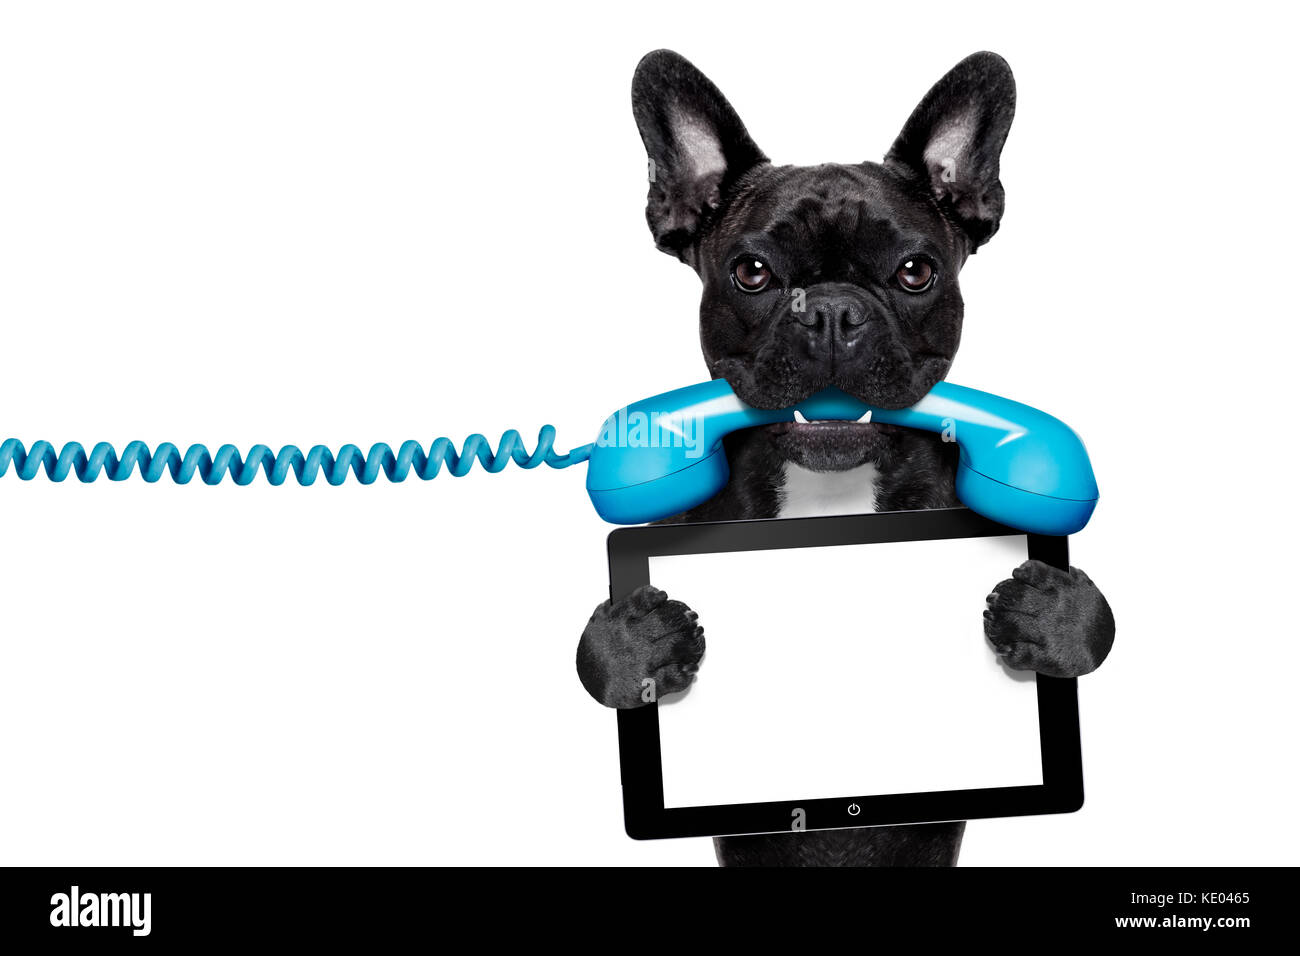 French bulldog dog holding a old retro telephone and a blank tablet french bulldog dog holding a old retro telephone and a blank tablet pc computer ebookisolated on white background voltagebd Choice Image